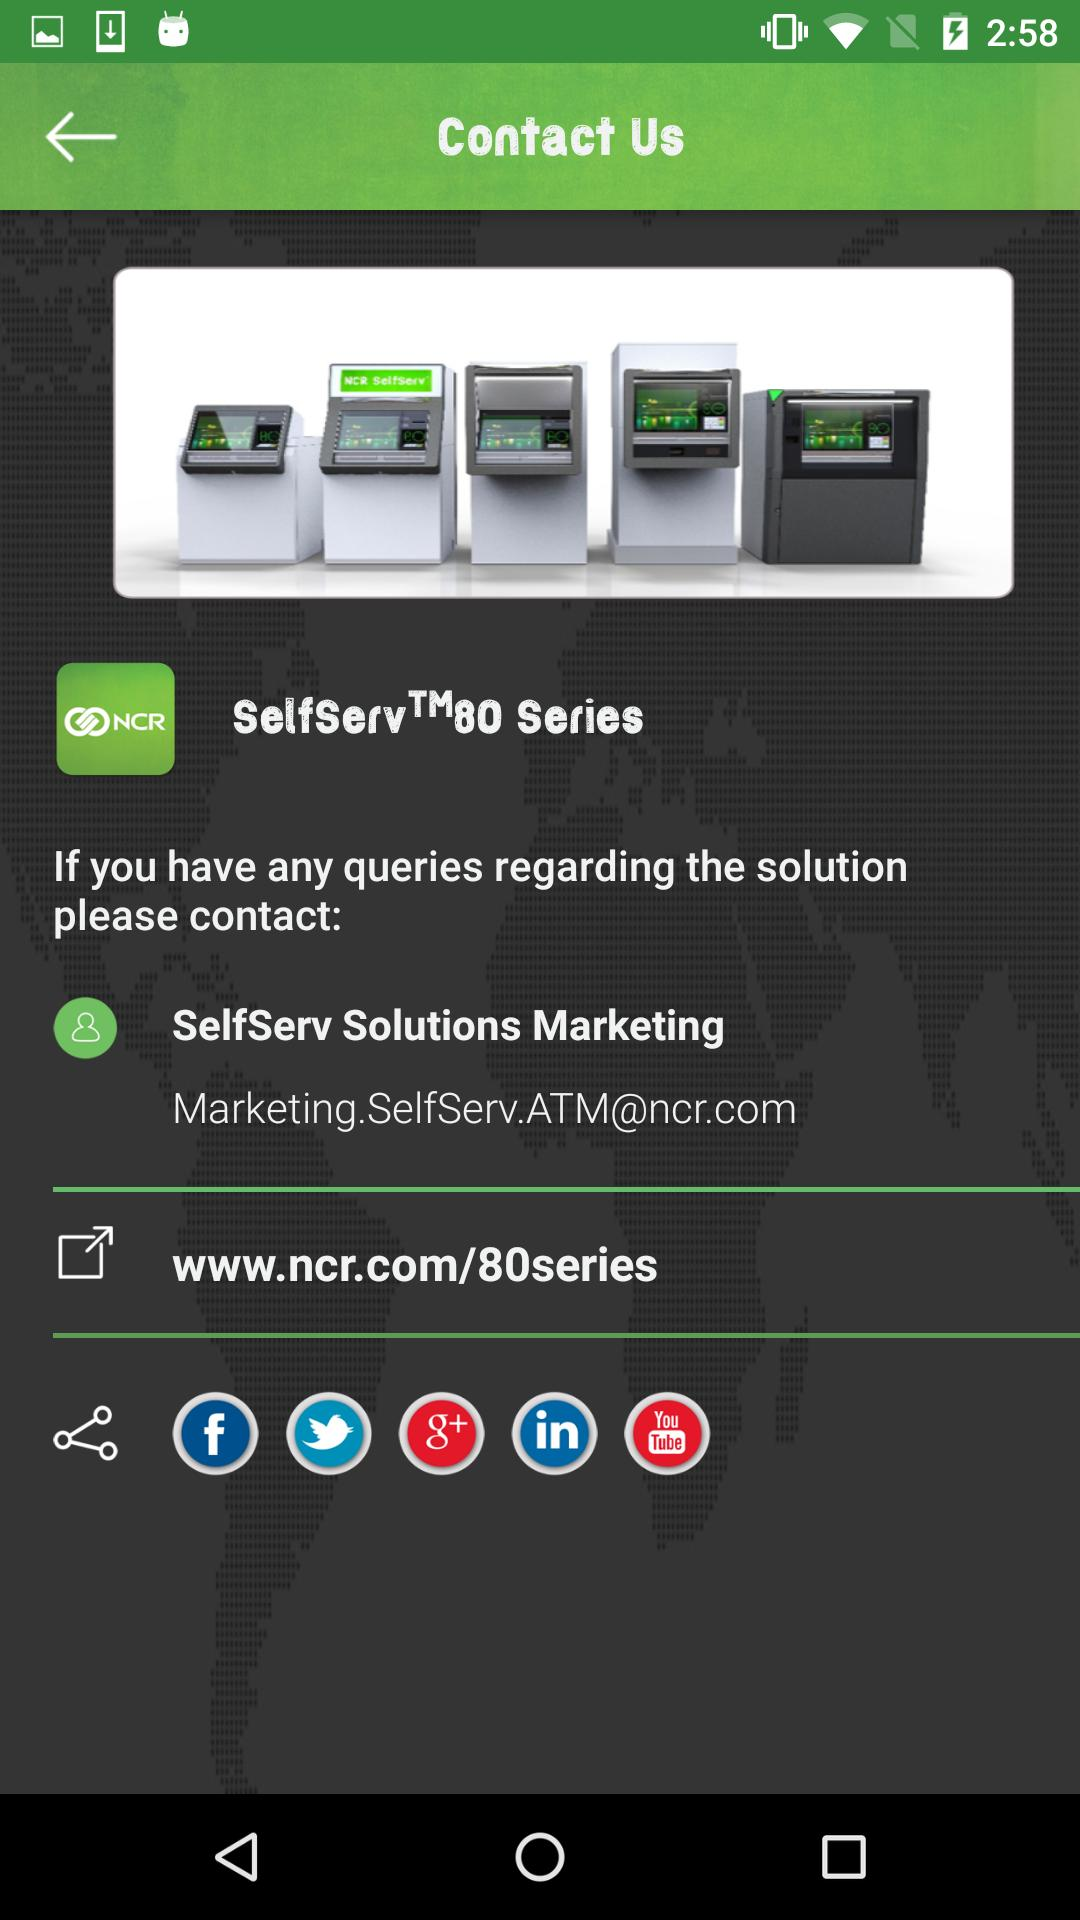 NCR SelfServ 80 Series for Android - APK Download